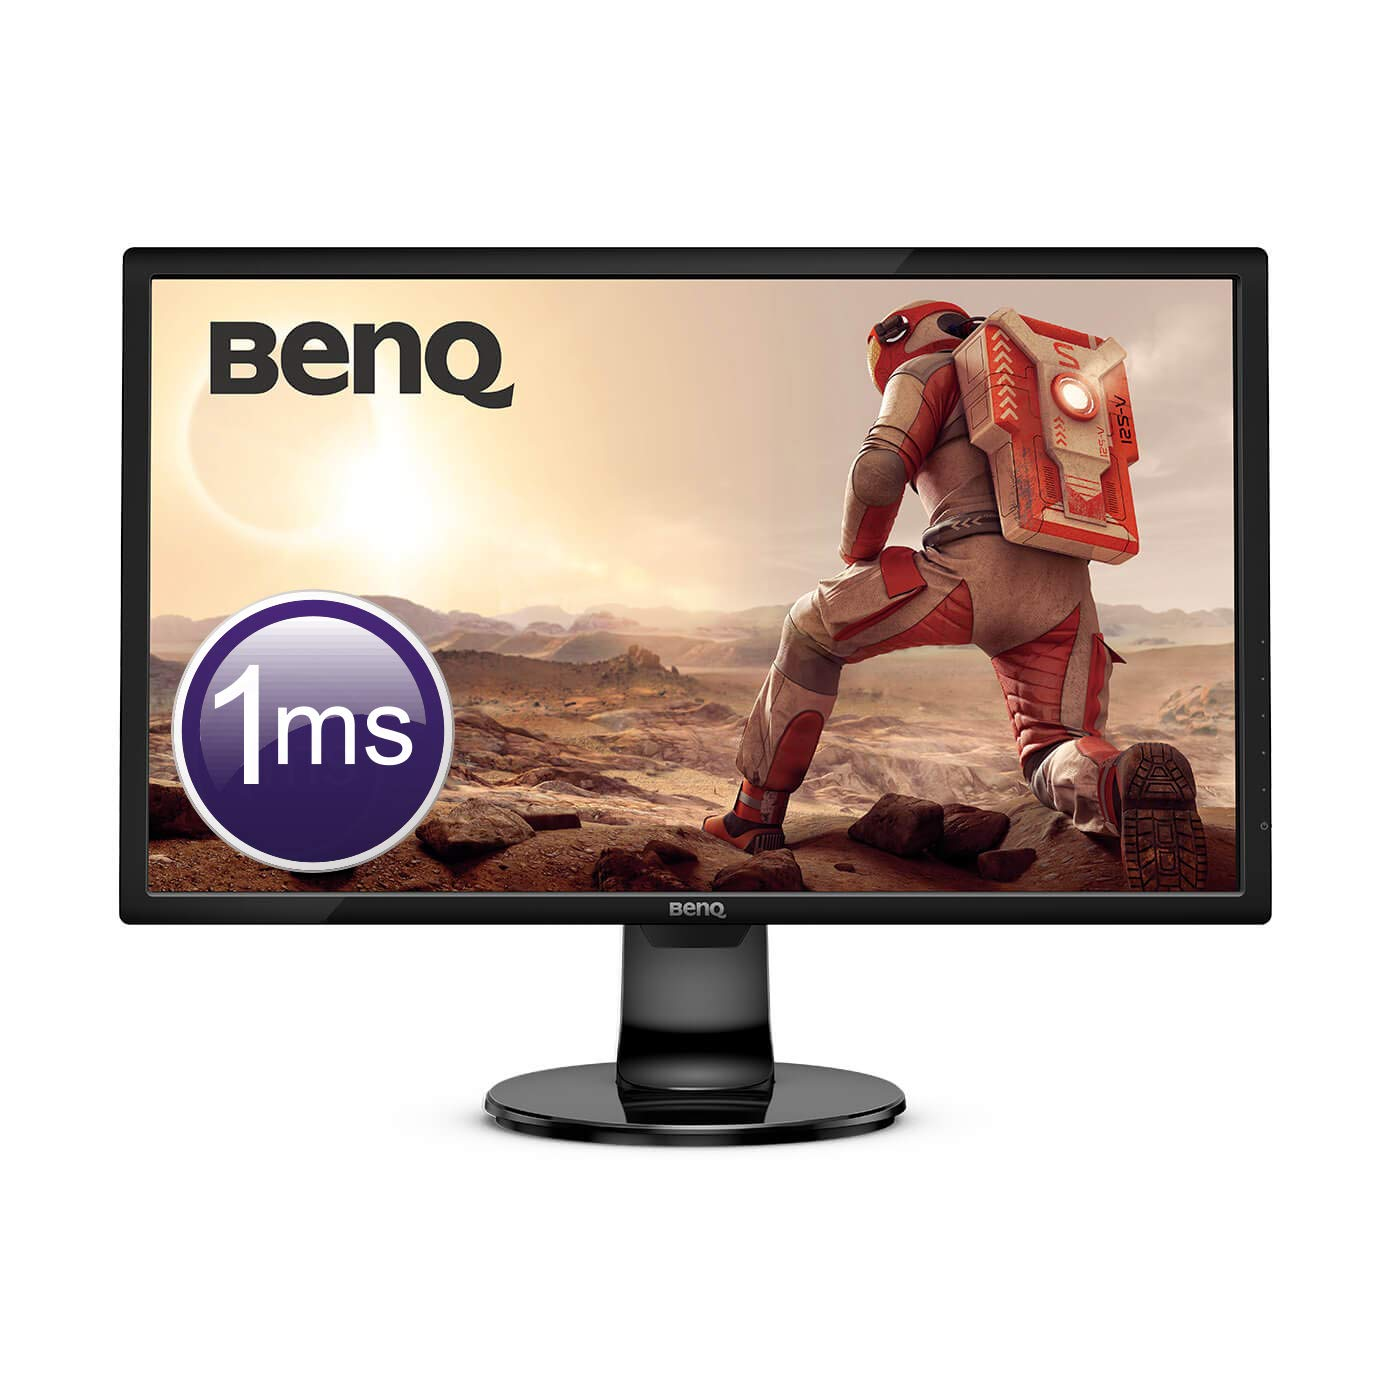 BenQ GL2706PQ - Monitor Gaming de 27' (LED 2K QHD, 1ms, Eye-Care, Regulable en Altura, HDMI, Display Port, Altavoces), Gris metá lico BenQ GL2706PQ - Monitor Gaming de 27 (LED 2K QHD Gris metálico